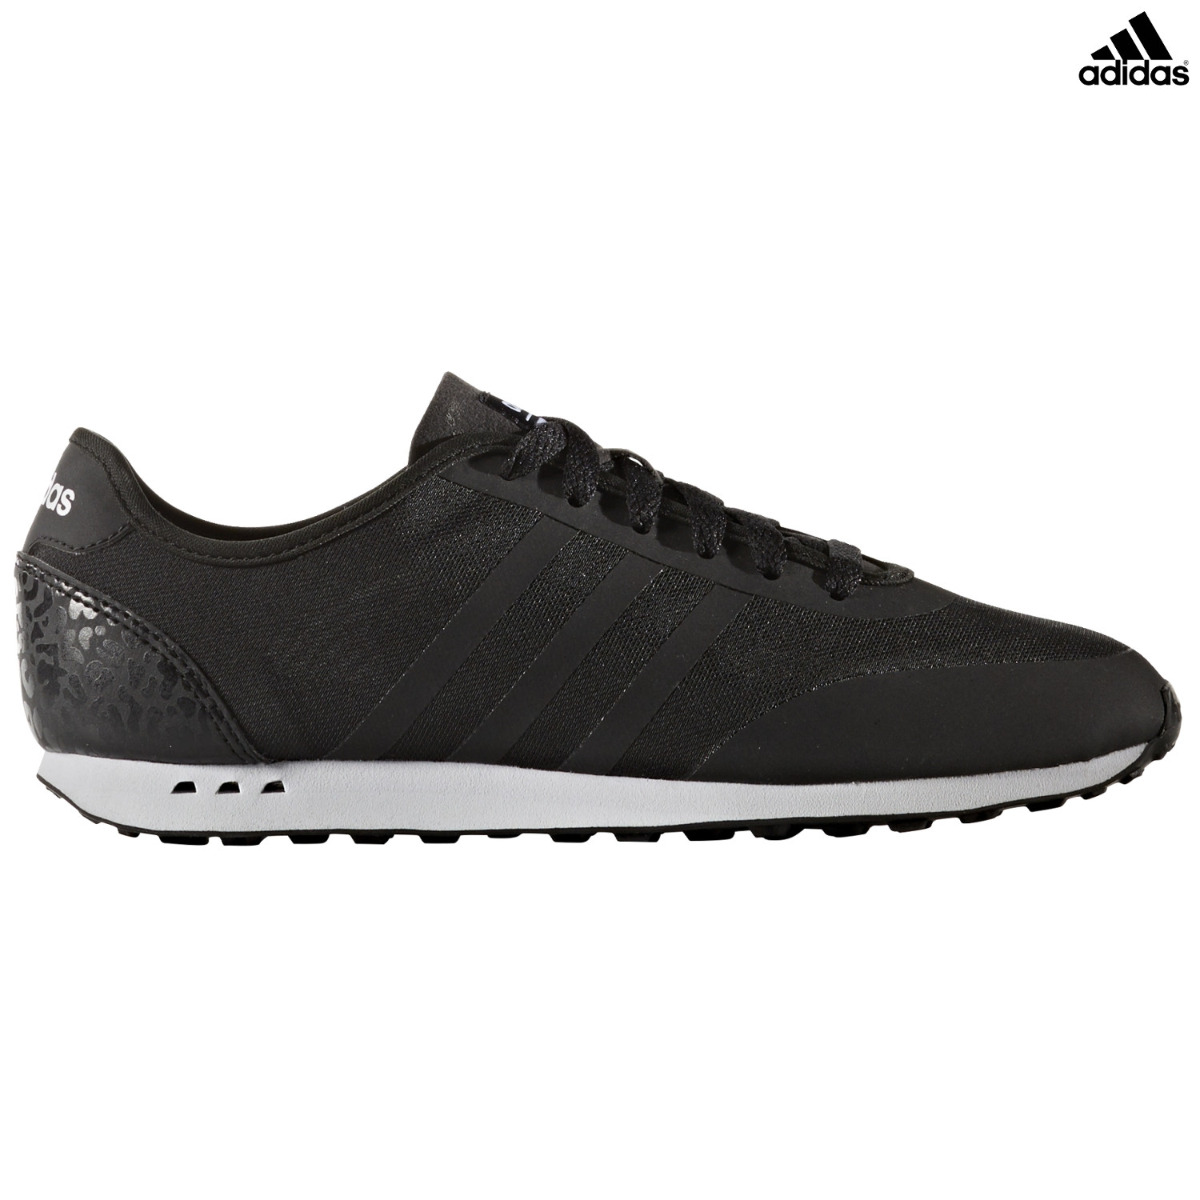 buy online 68113 8ab59 adidas Cloudfoam Groove TM Womens Shoes  Casual